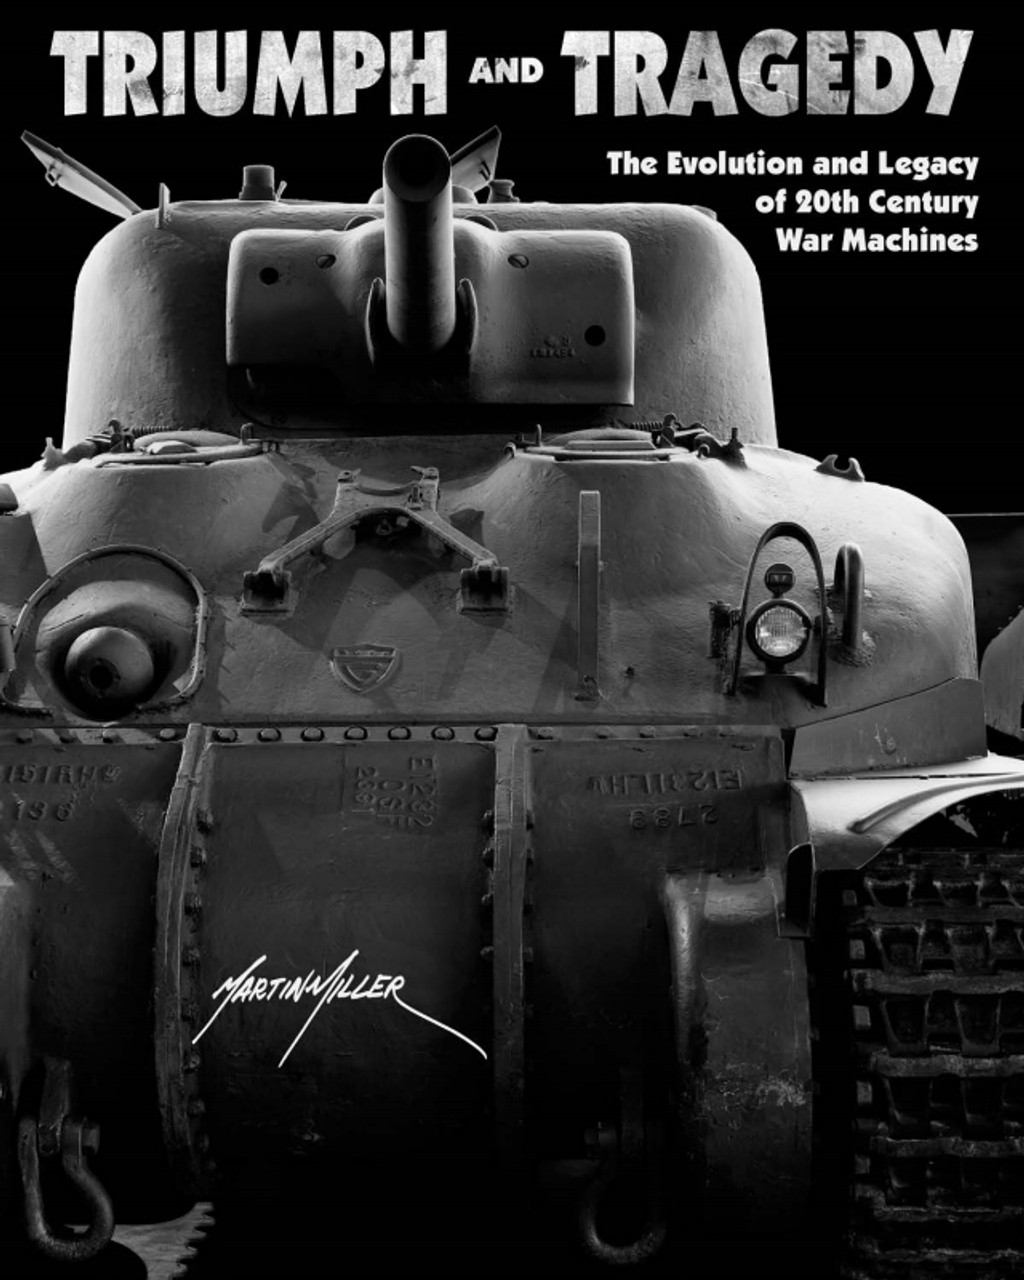 Triumph and Tragedy:  The Evolution and Legacy of 20th Century War Machines